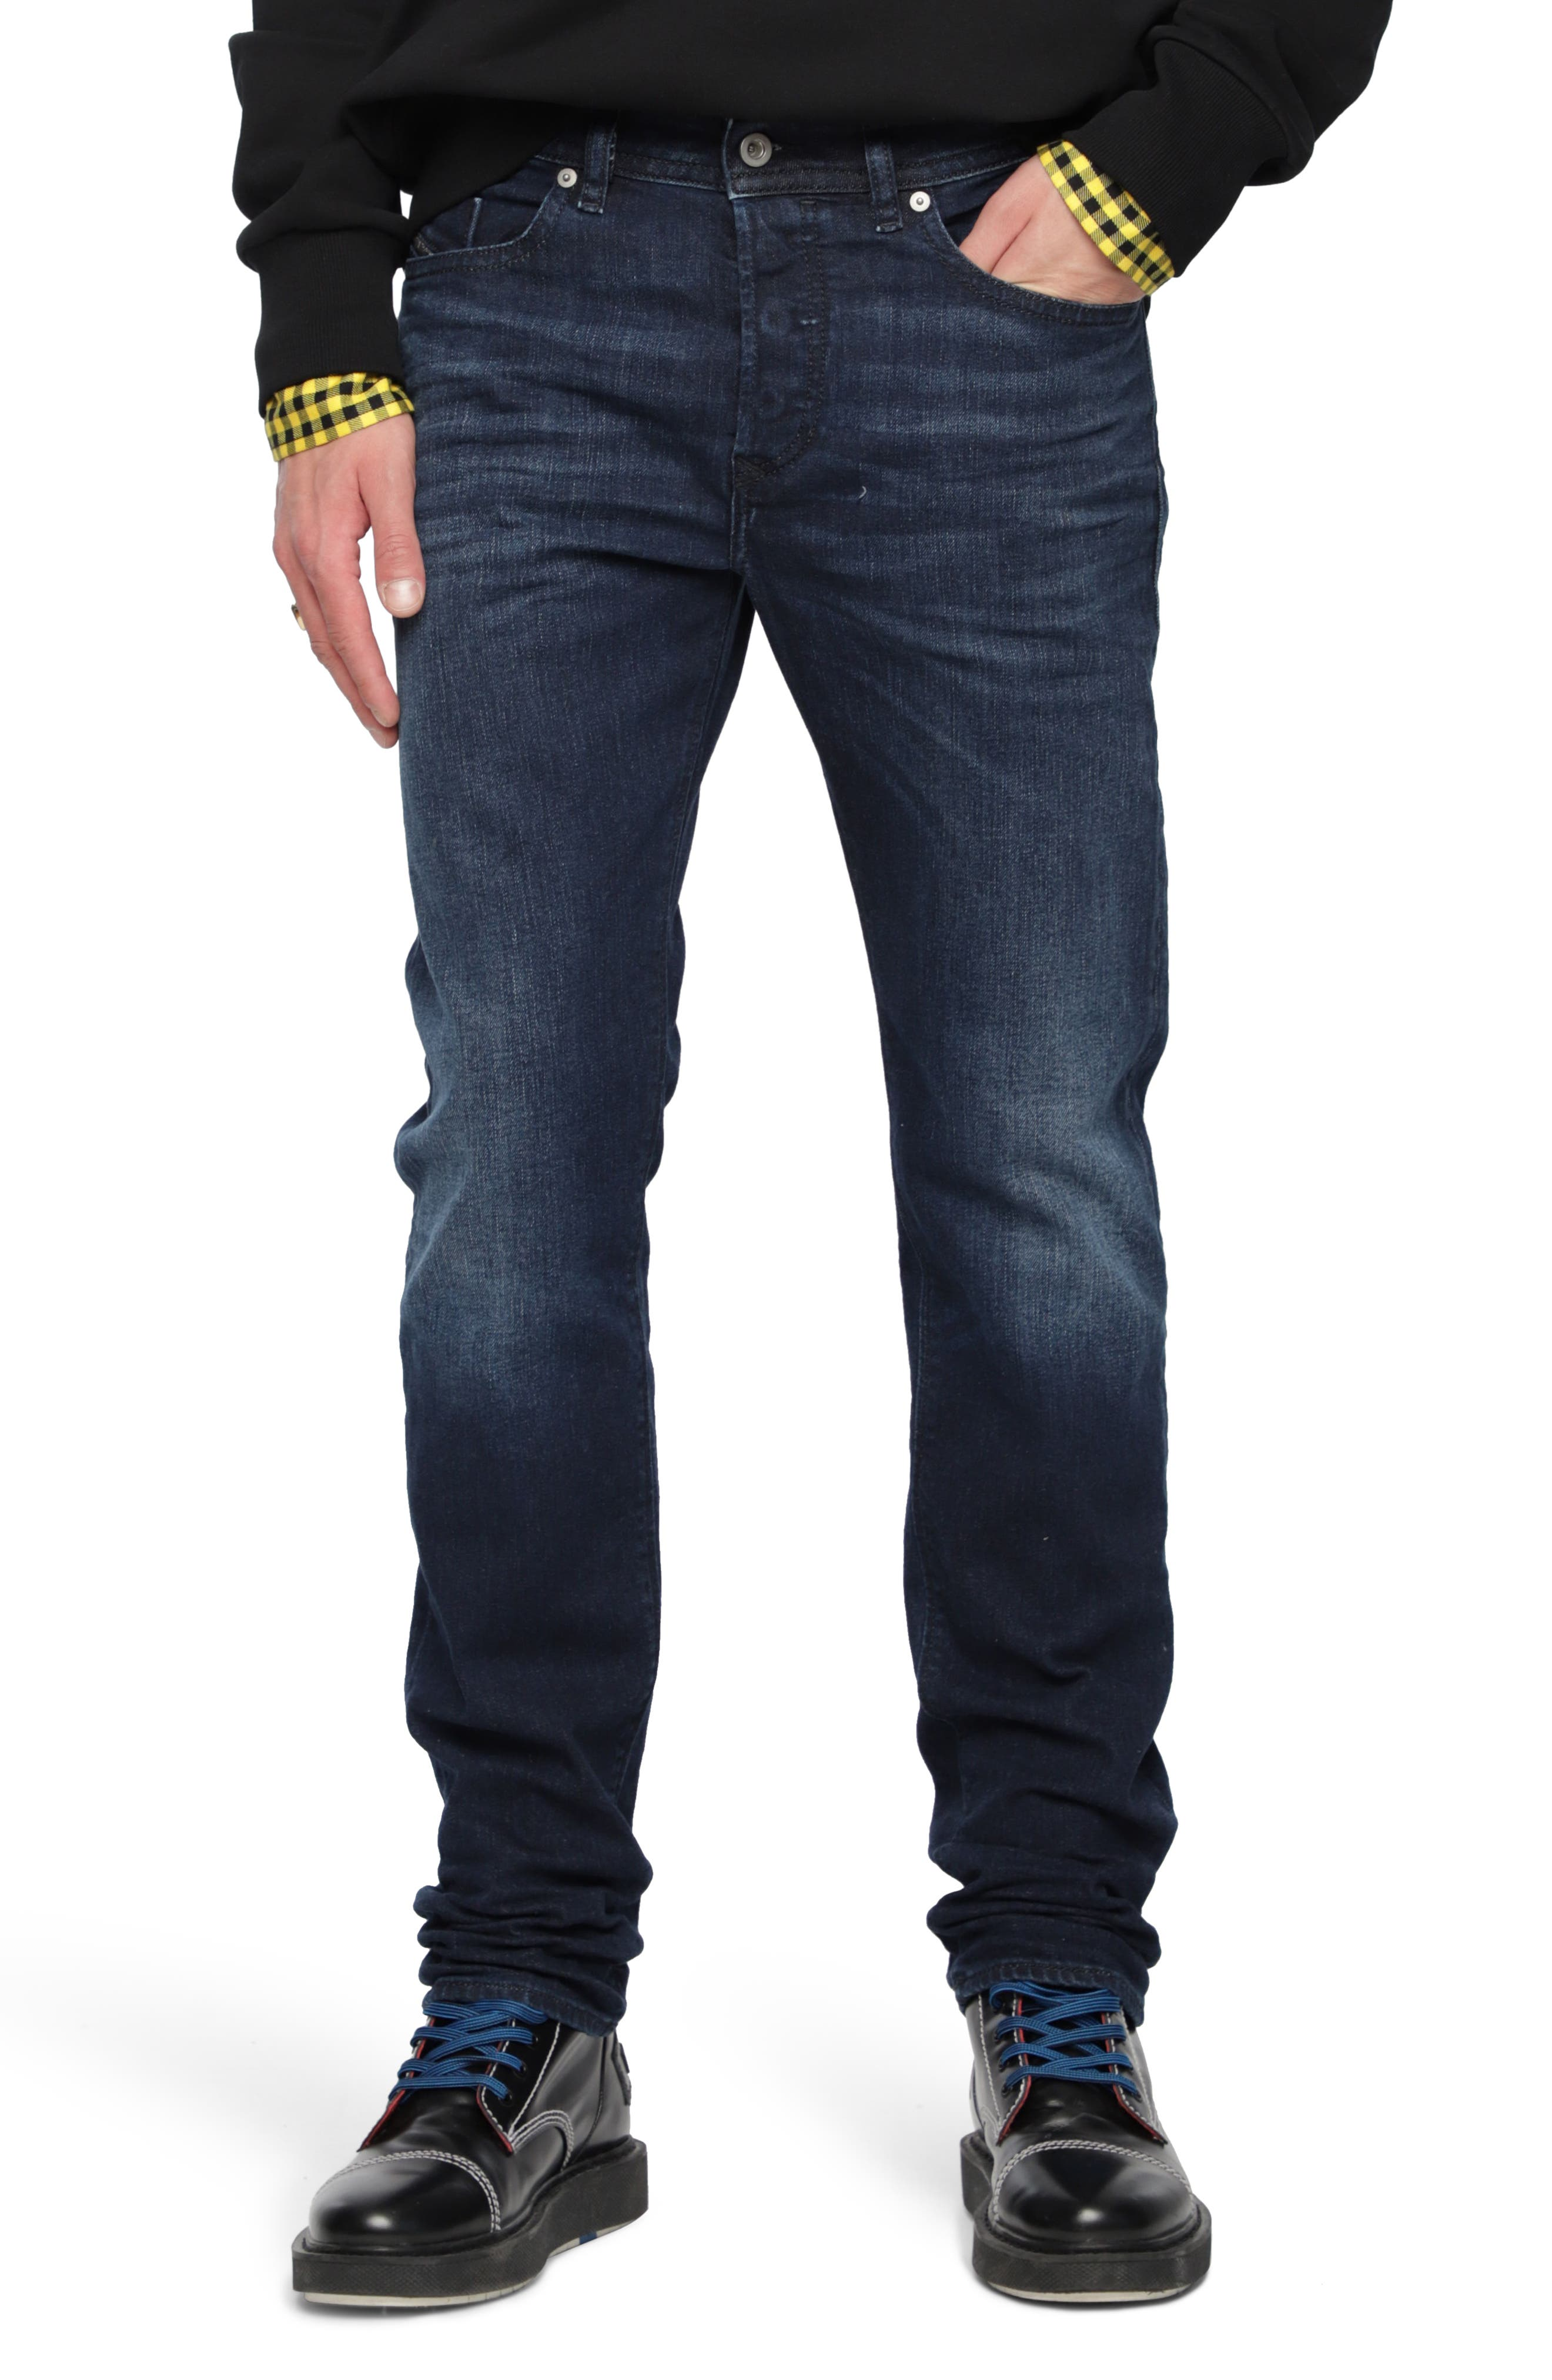 Buster Slim Straight Leg Jeans,                         Main,                         color, 084Vg